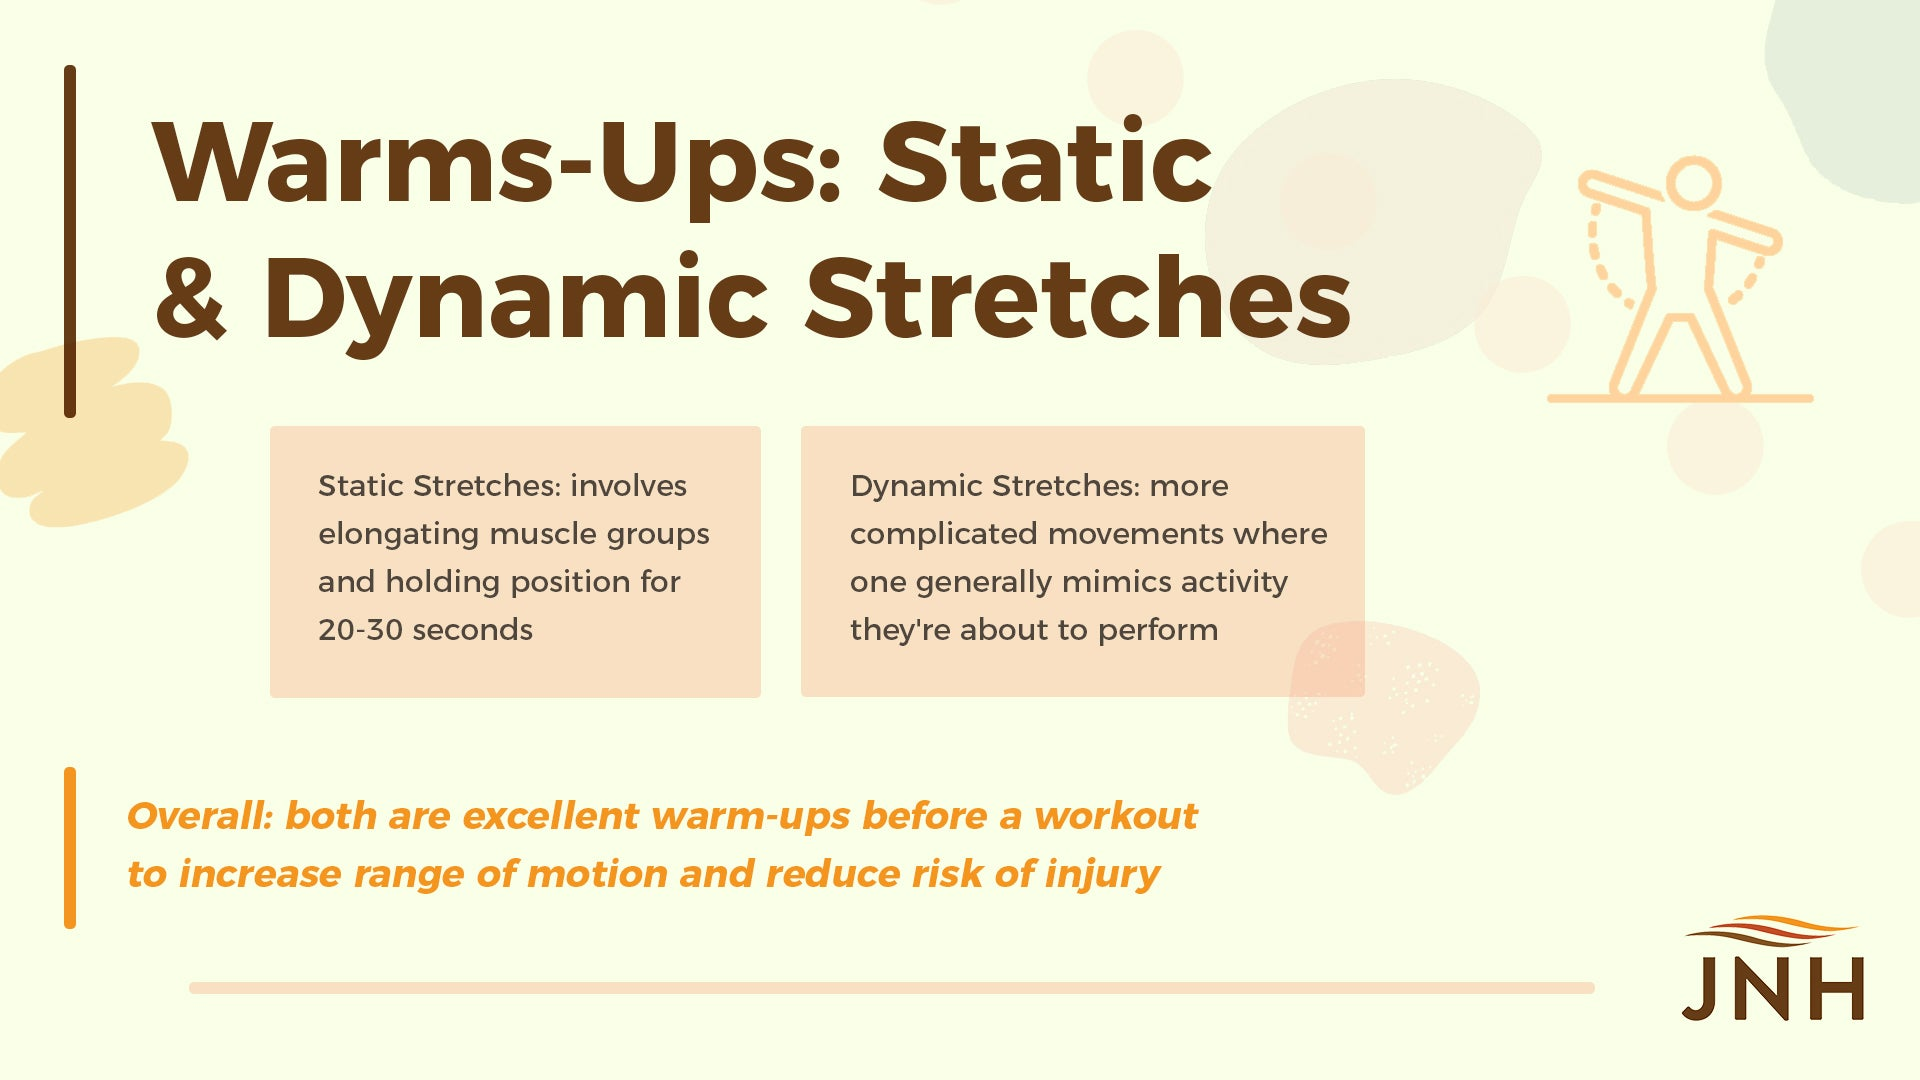 Warms-Ups: Static & Dynamic Stretches 1. Static Stretches: involves elongating muscle groups and holding position for 20-30 seconds 2. Dynamic Stretches: more complicated movements where one generally mimics activity they're about to perform 3. Overall: both are excellent warm-ups before a workout to increase range of motion and reduce risk of injury